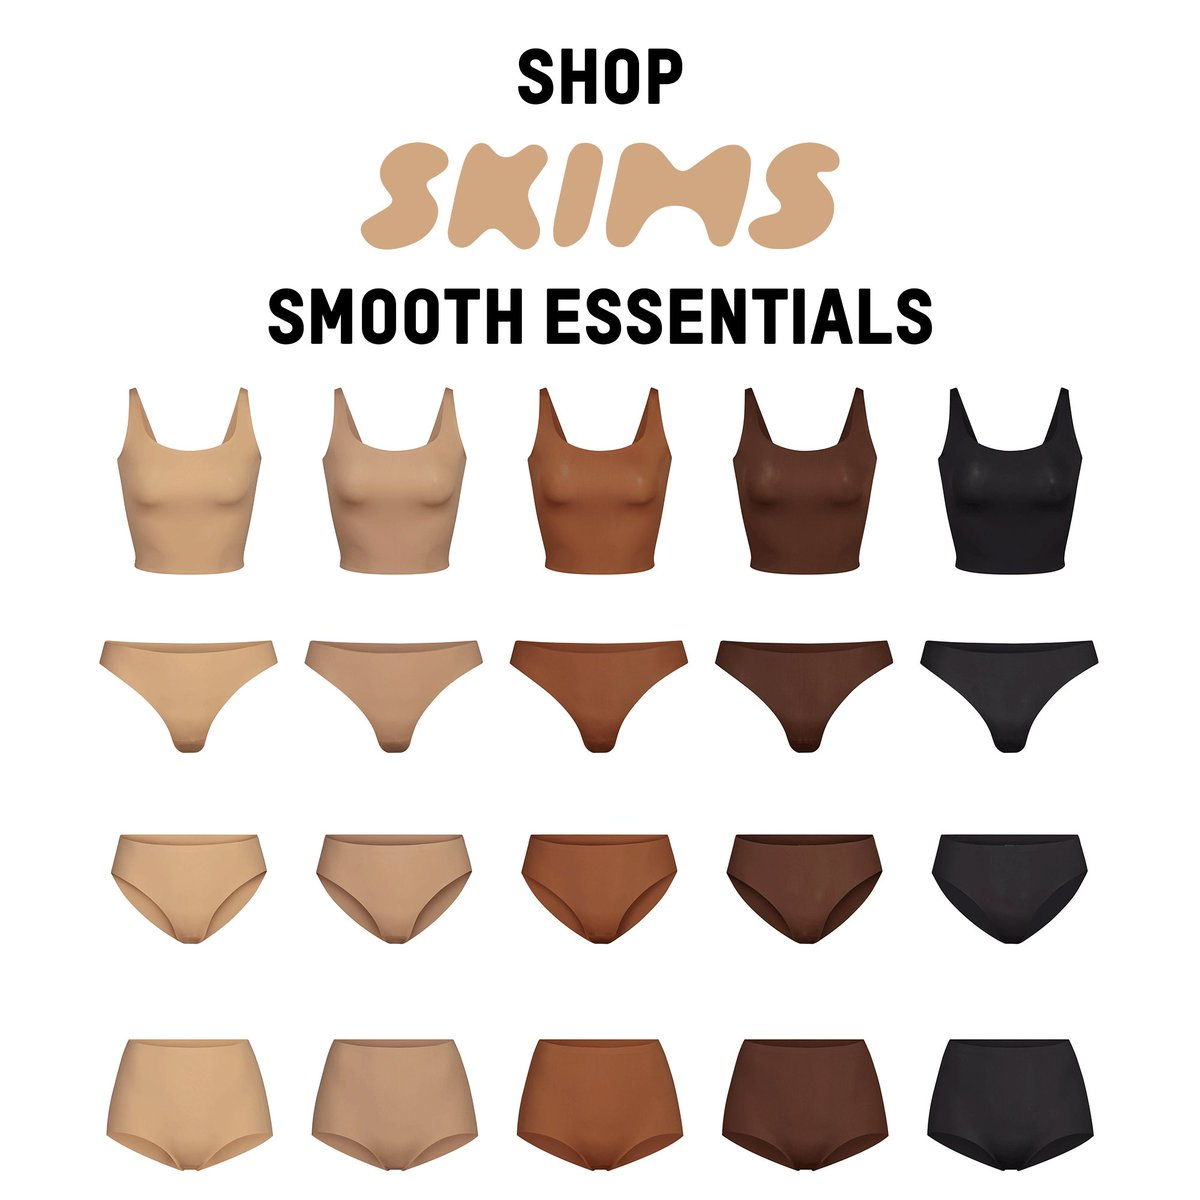 Shop @SKIMS Smooth Essentials now only at http://SKIMS.COMpic.twitter.com/PNZYPT393l